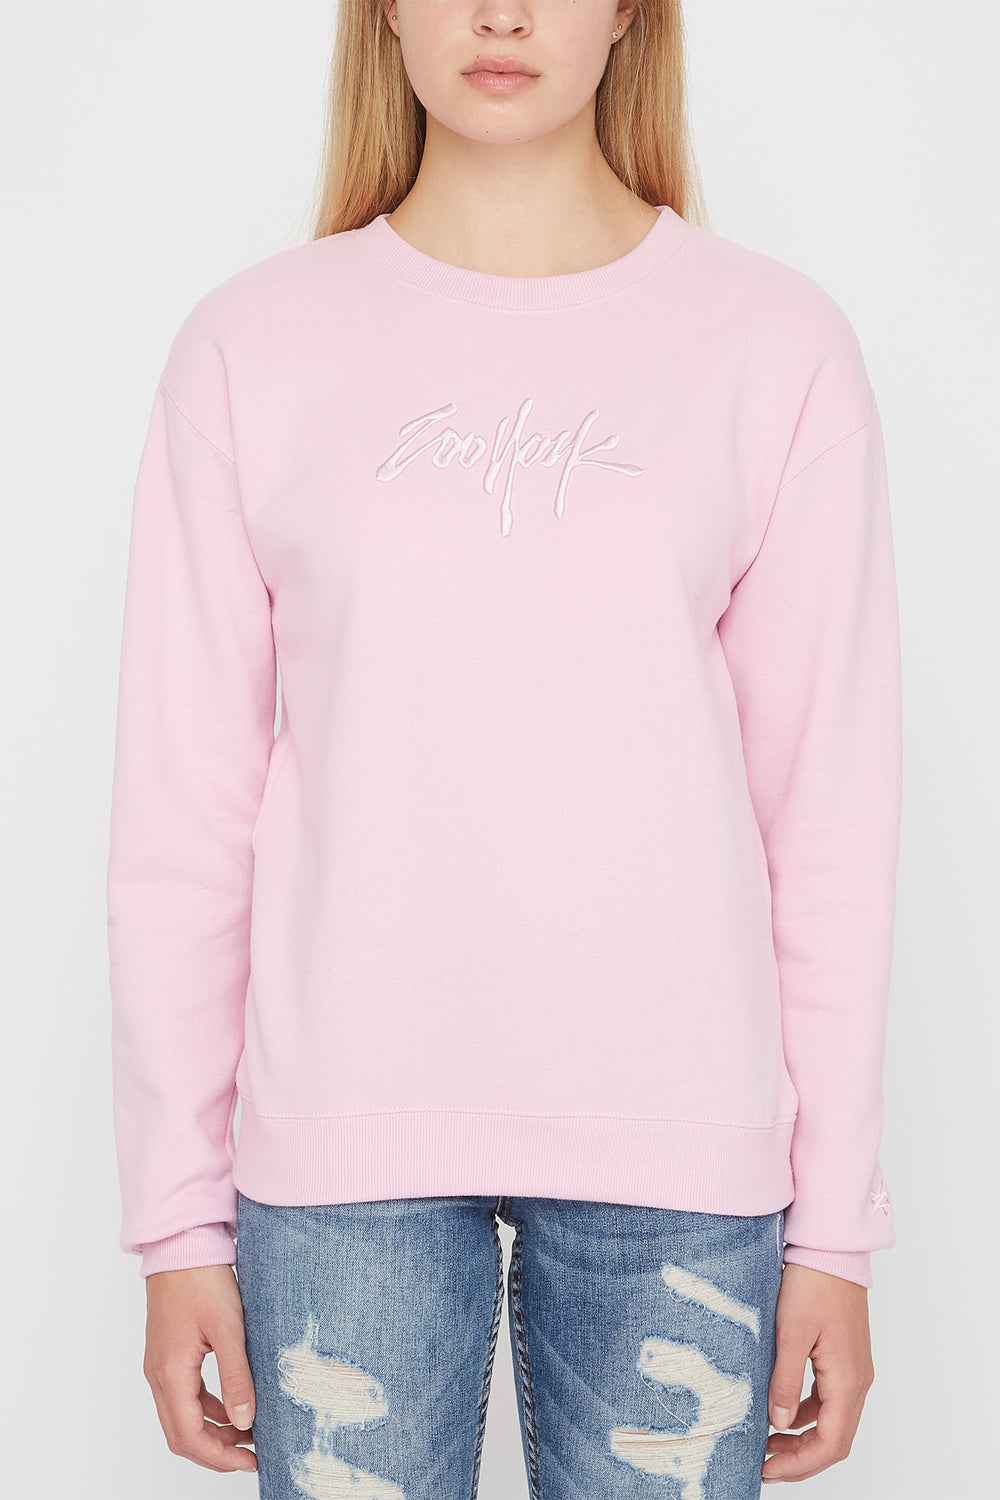 Zoo York Womens Embroidered Logo Pastel Sweater Light Pink